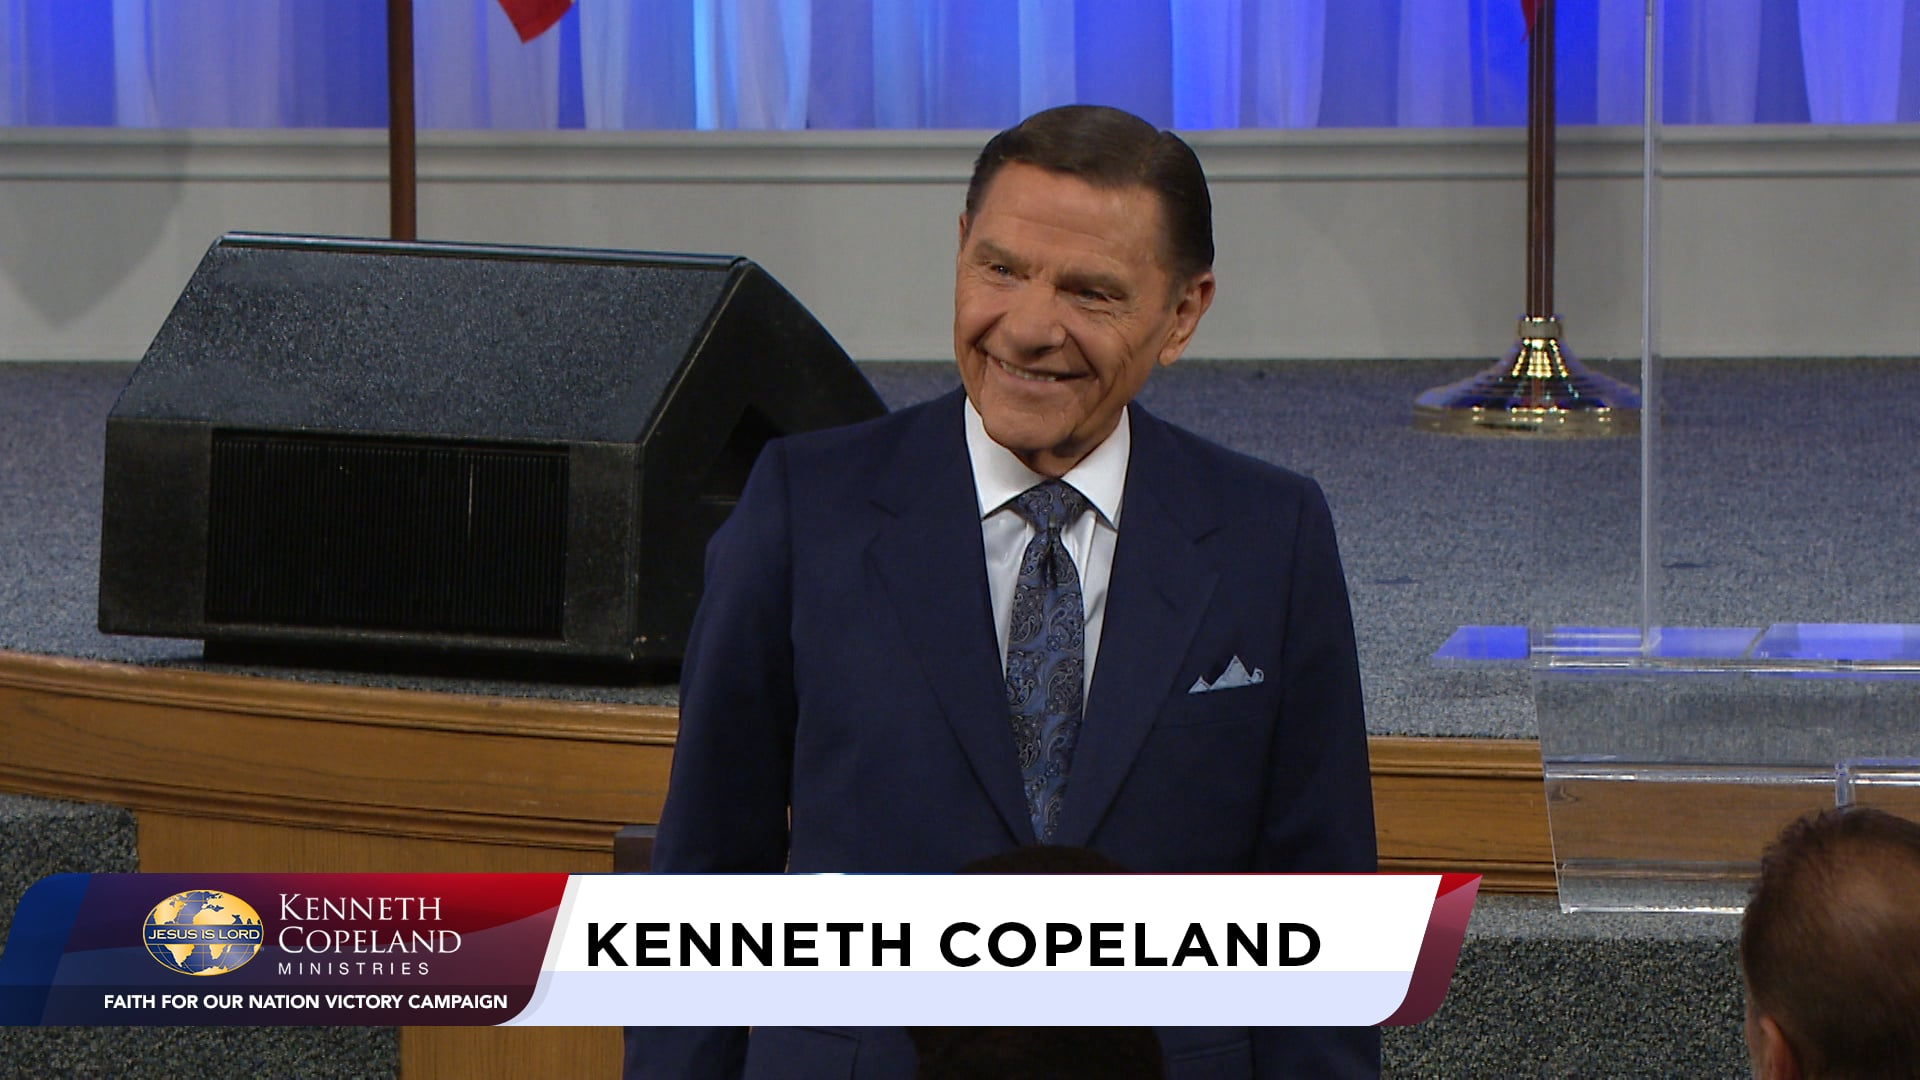 At the 2020 Faith for Our Nation VICTORY Campaign, Kenneth Copeland encourages believers to learn how to listen for the Holy Spirit's direction in everything. It can be a matter of life and death. You haven't finished praying until you listen! Learn here how to listen to God and stop your own thinking.